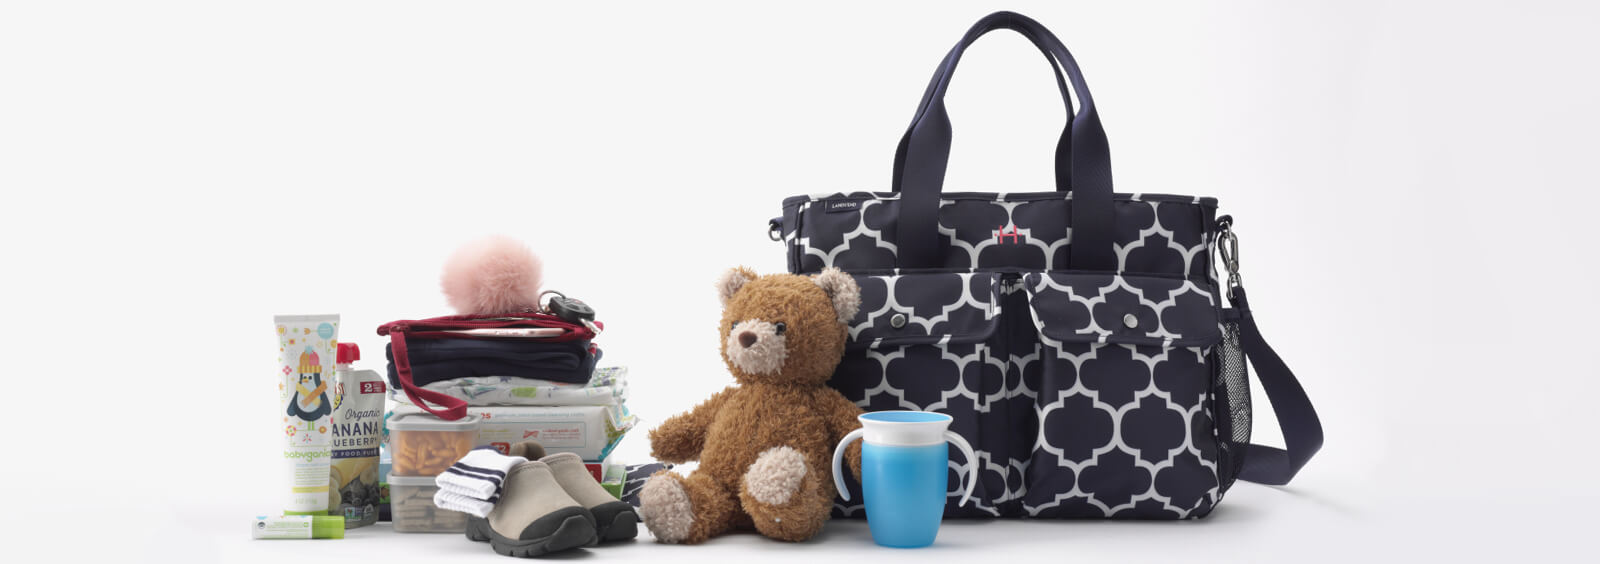 Must-Have Diaper Bags for Traveling | Lands' End